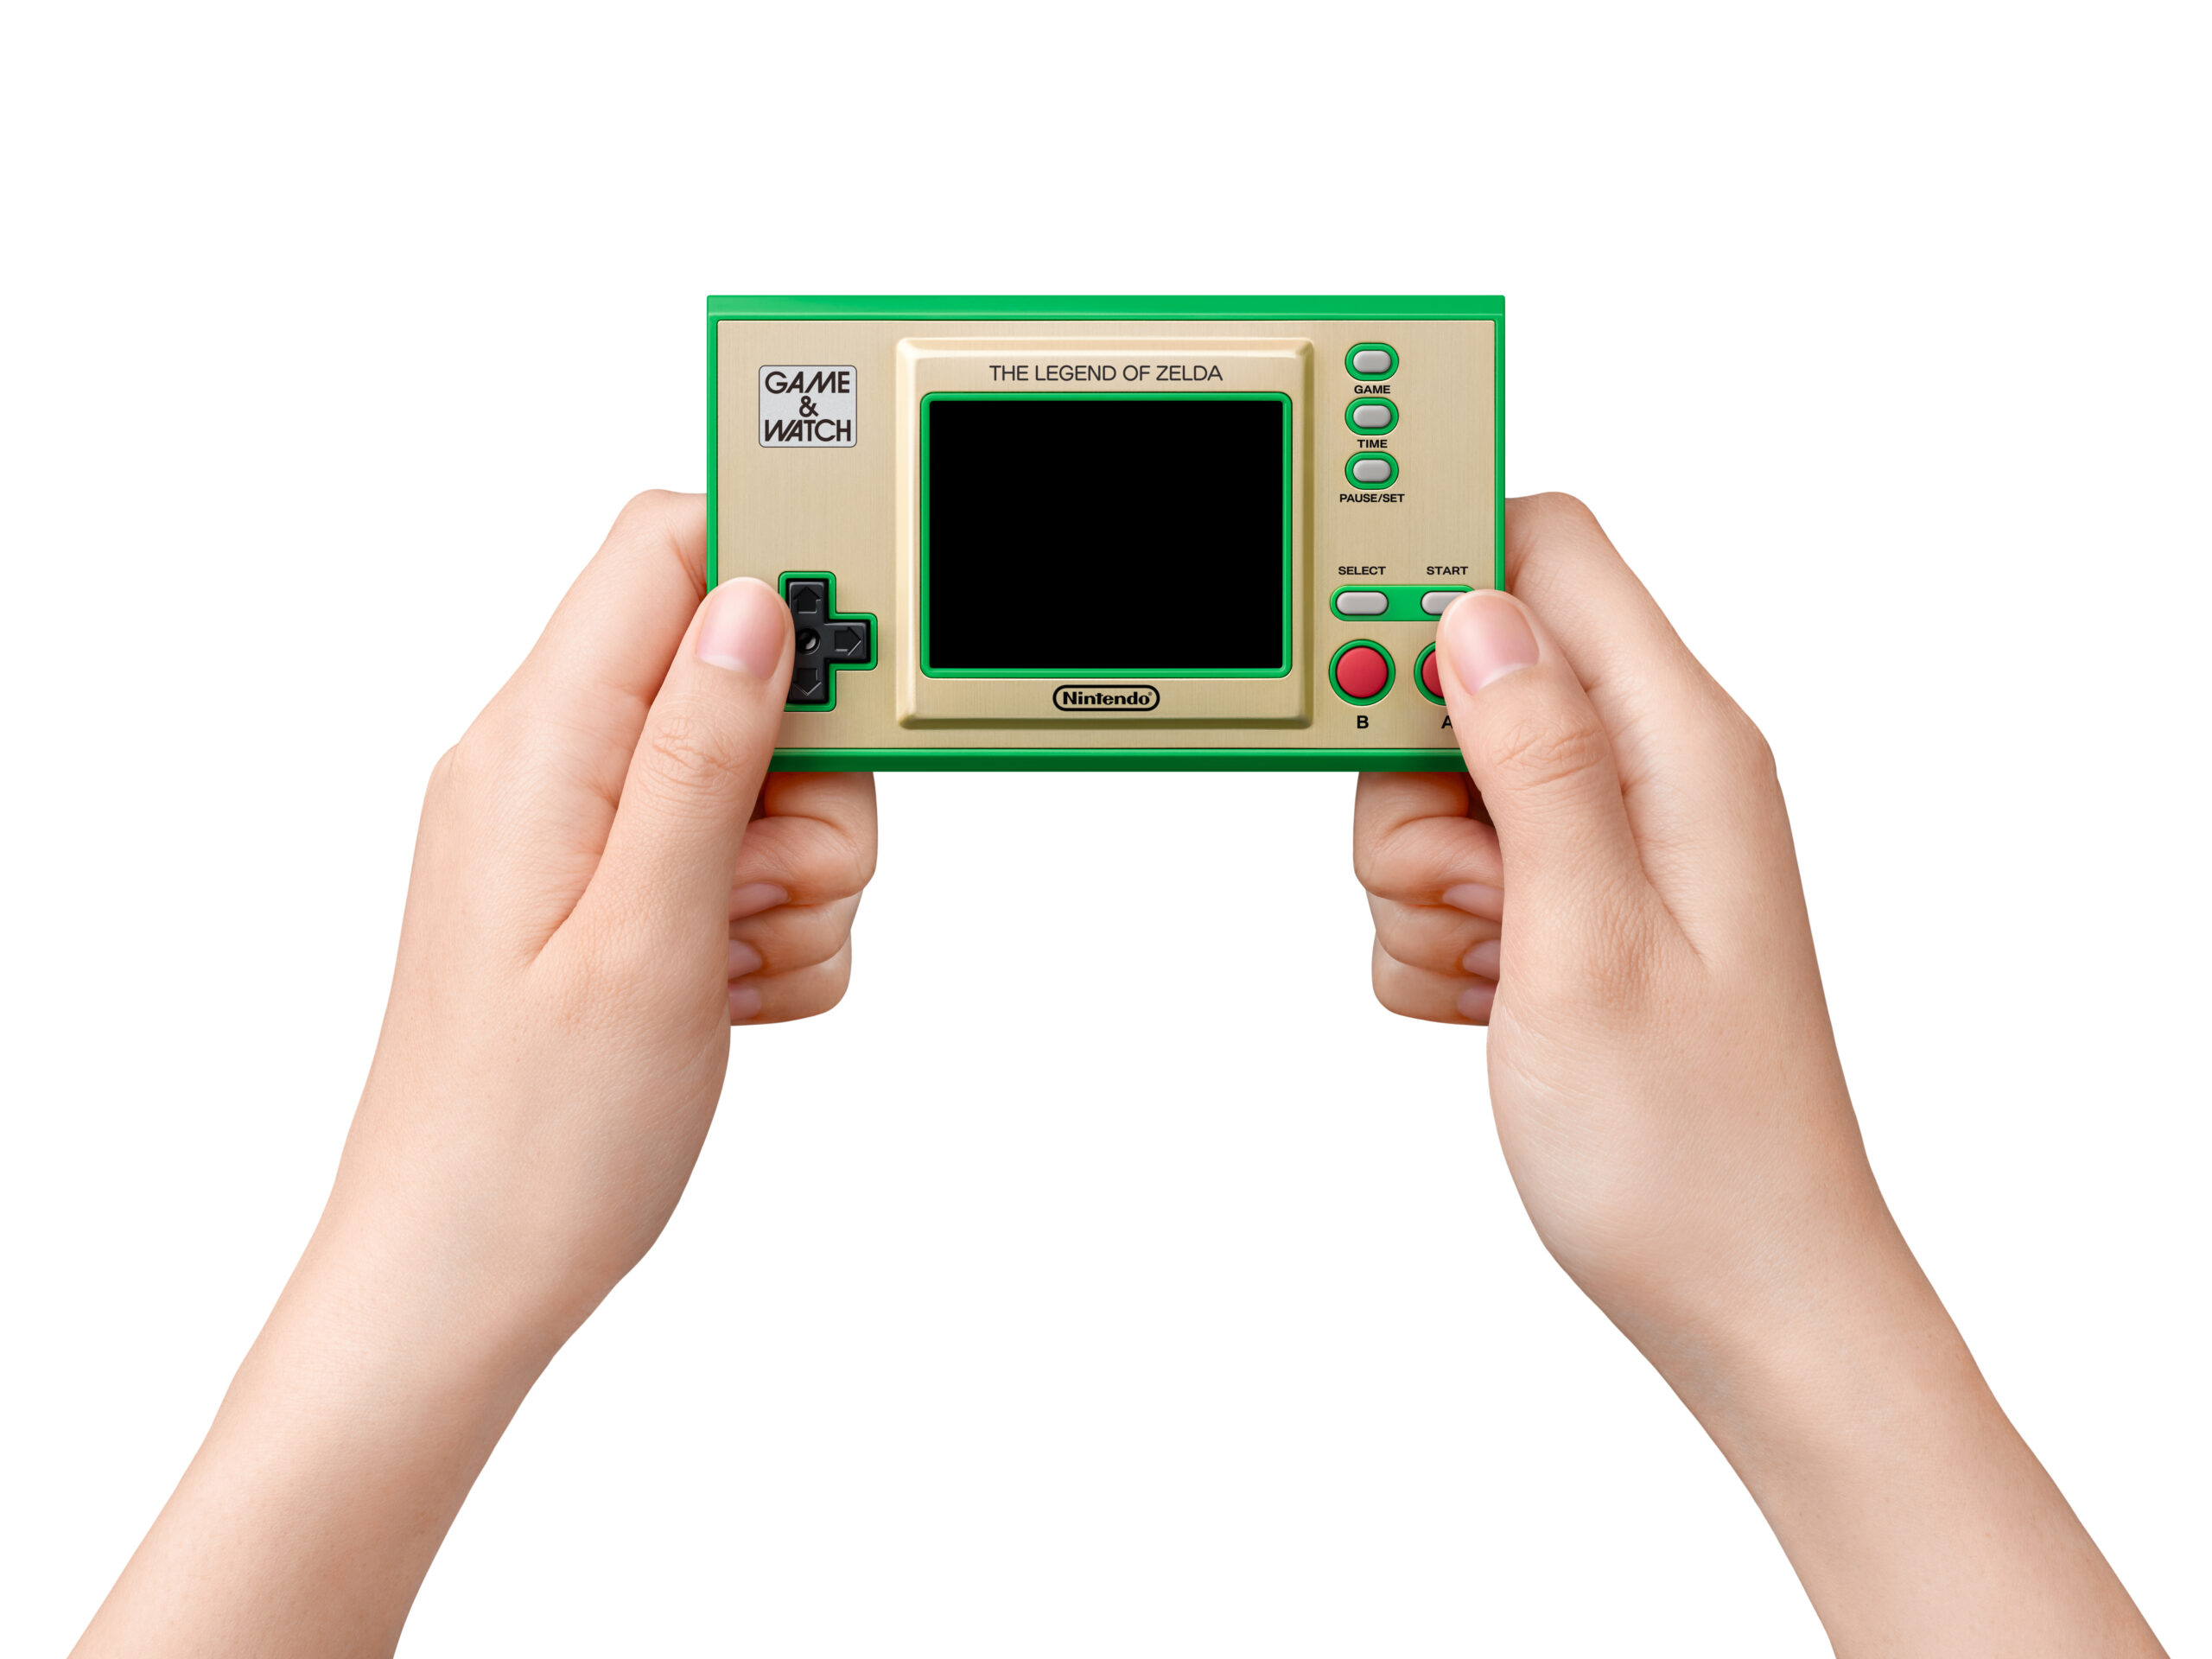 Game and Watch The Legend of Zelda 2021 06 15 21 009 scaled